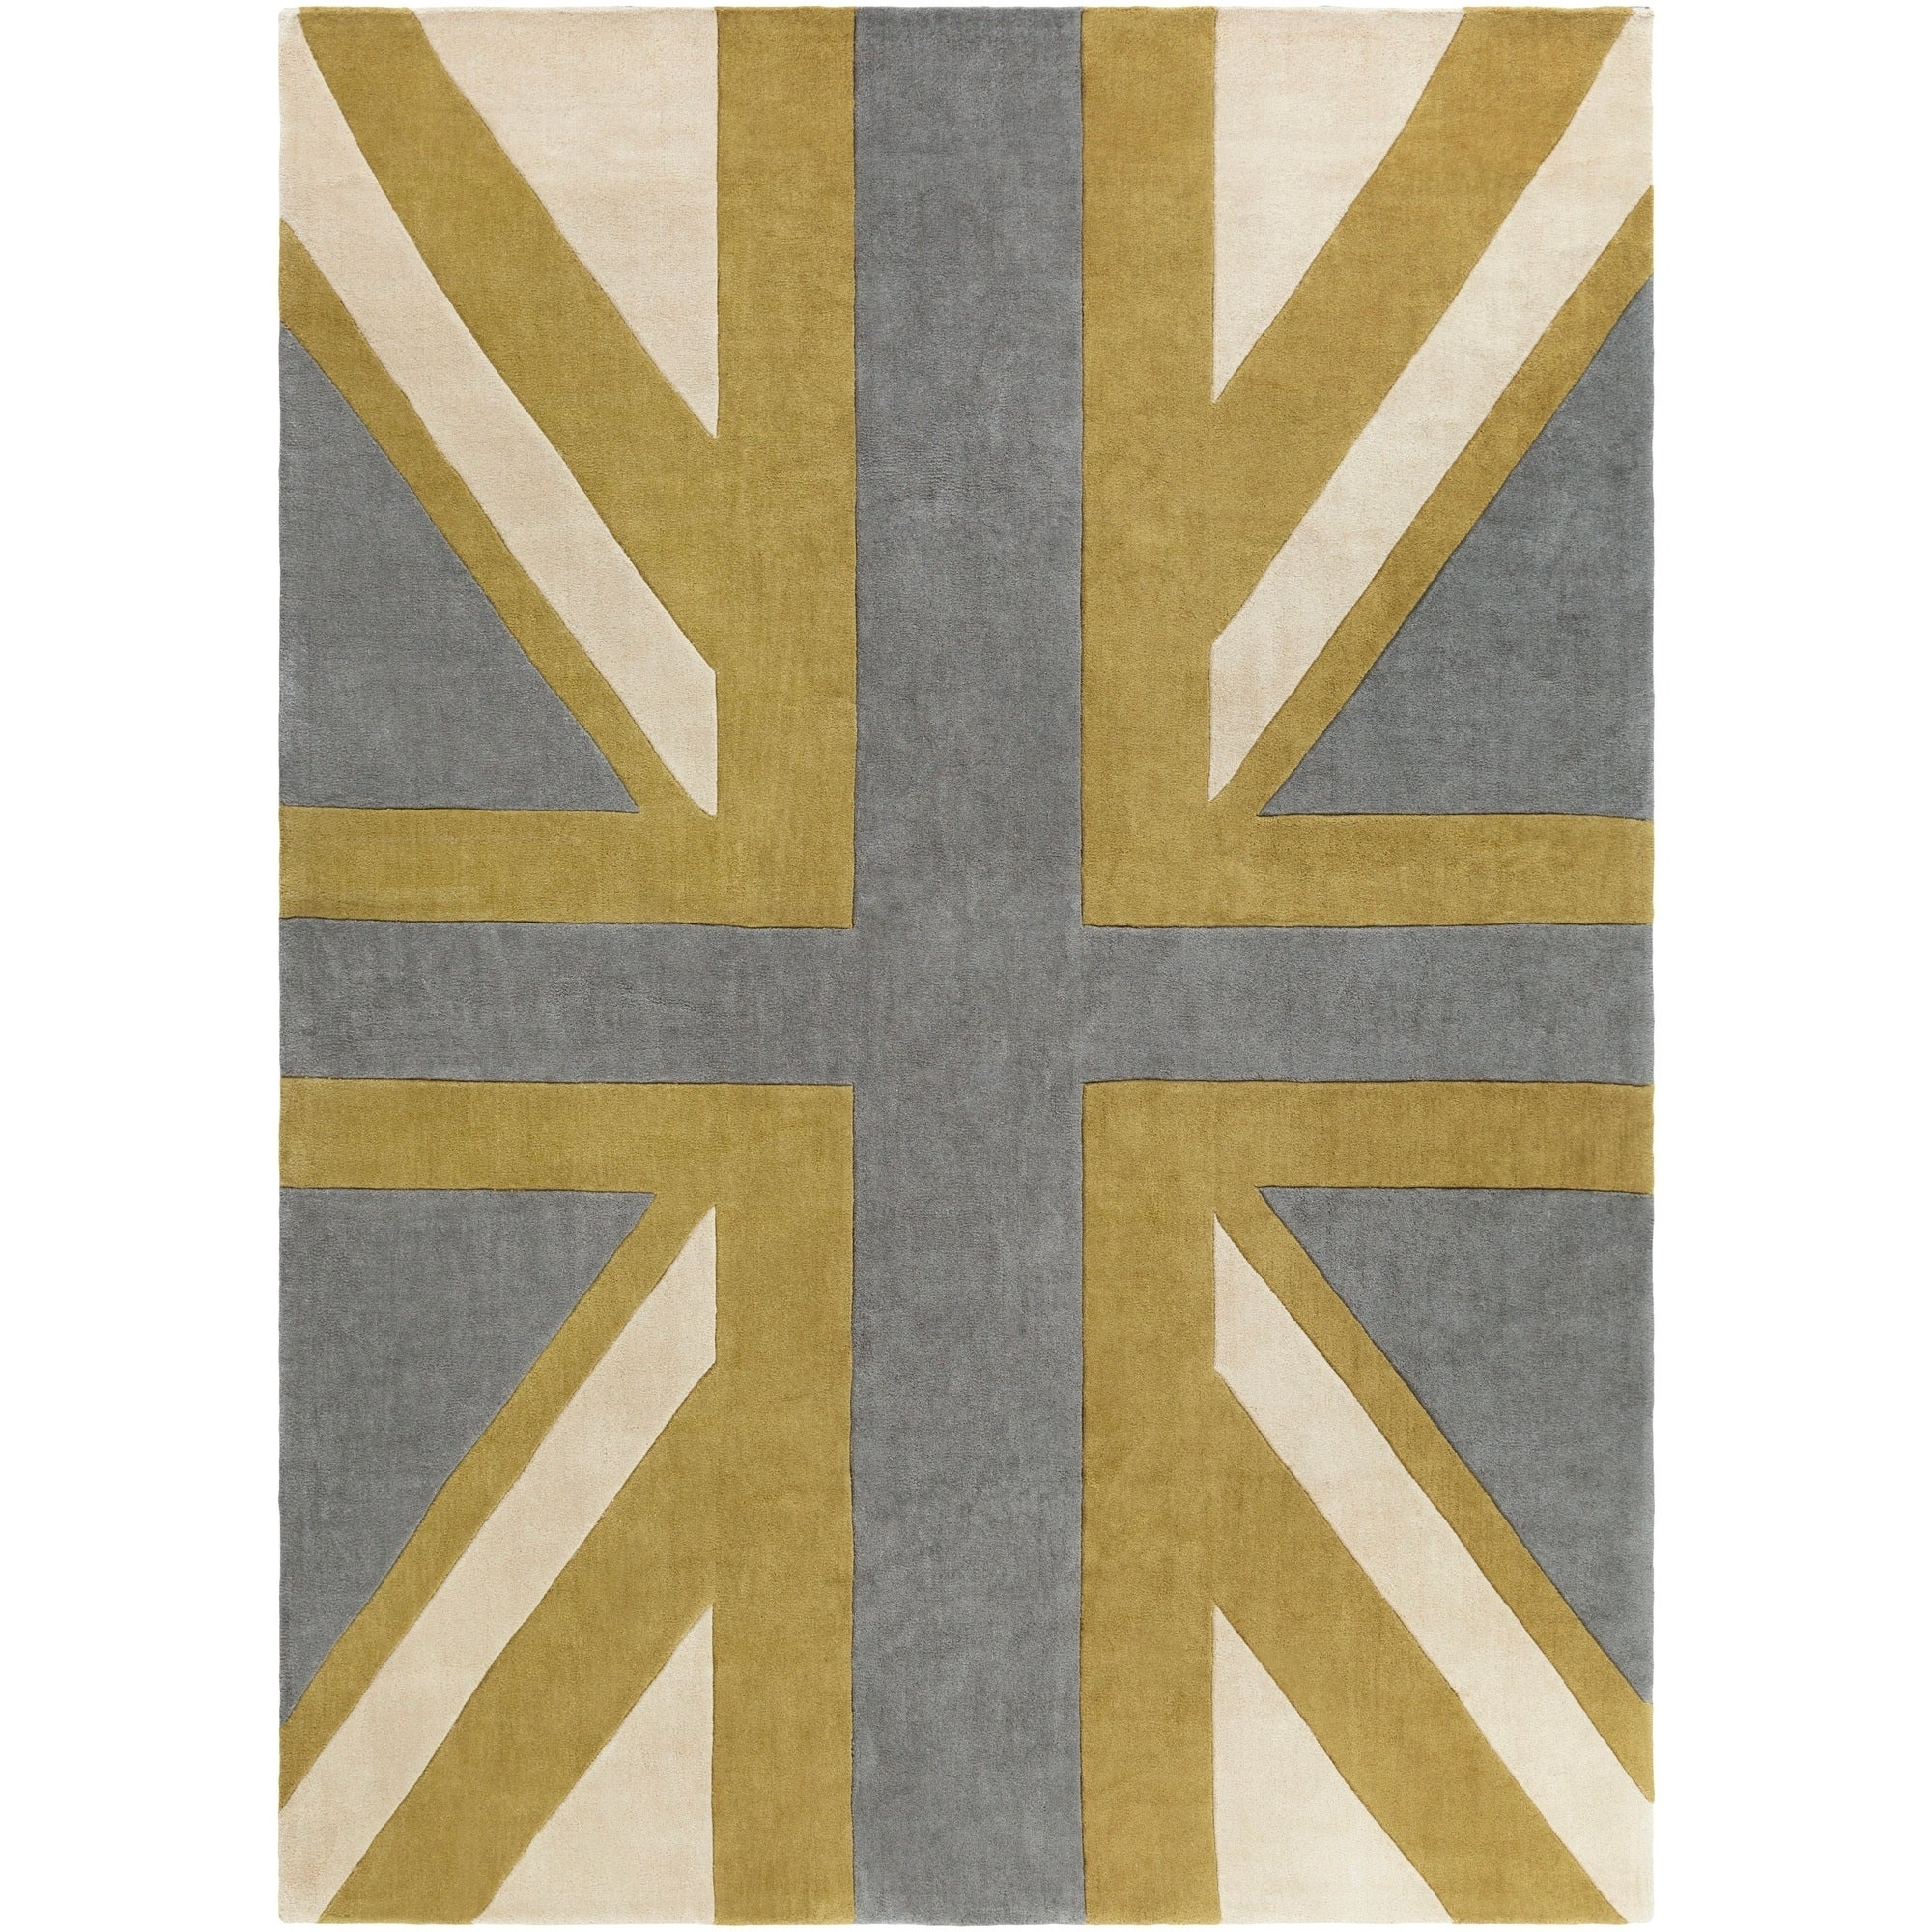 Shop Hand-tufted Union Jack Novelty Contemporary Area Rug - 8\' x 11 ...